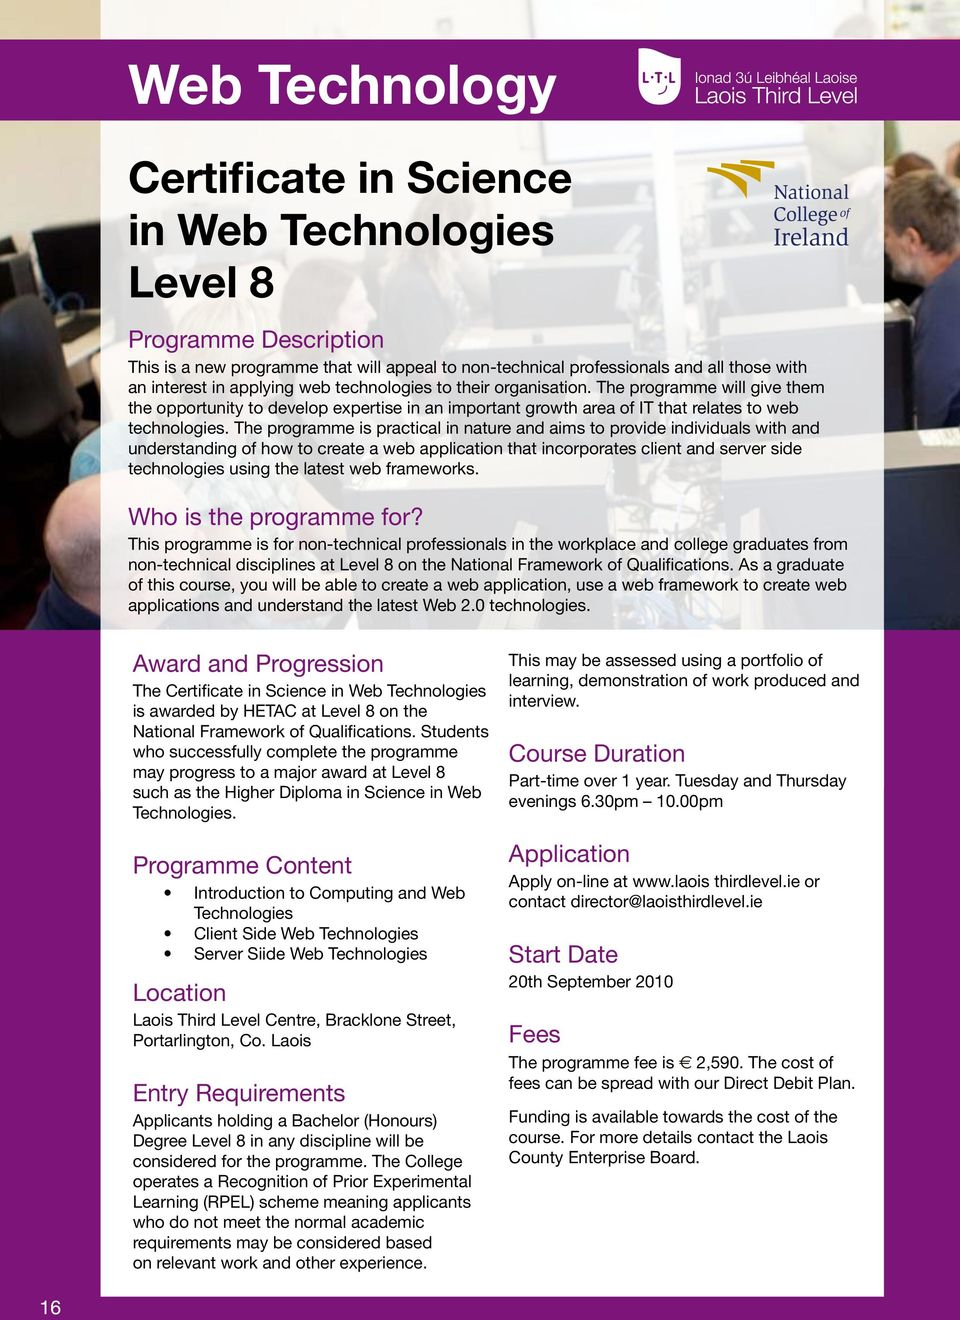 The programme is practical in nature and aims to provide individuals with and understanding of how to create a web application that incorporates client and server side technologies using the latest